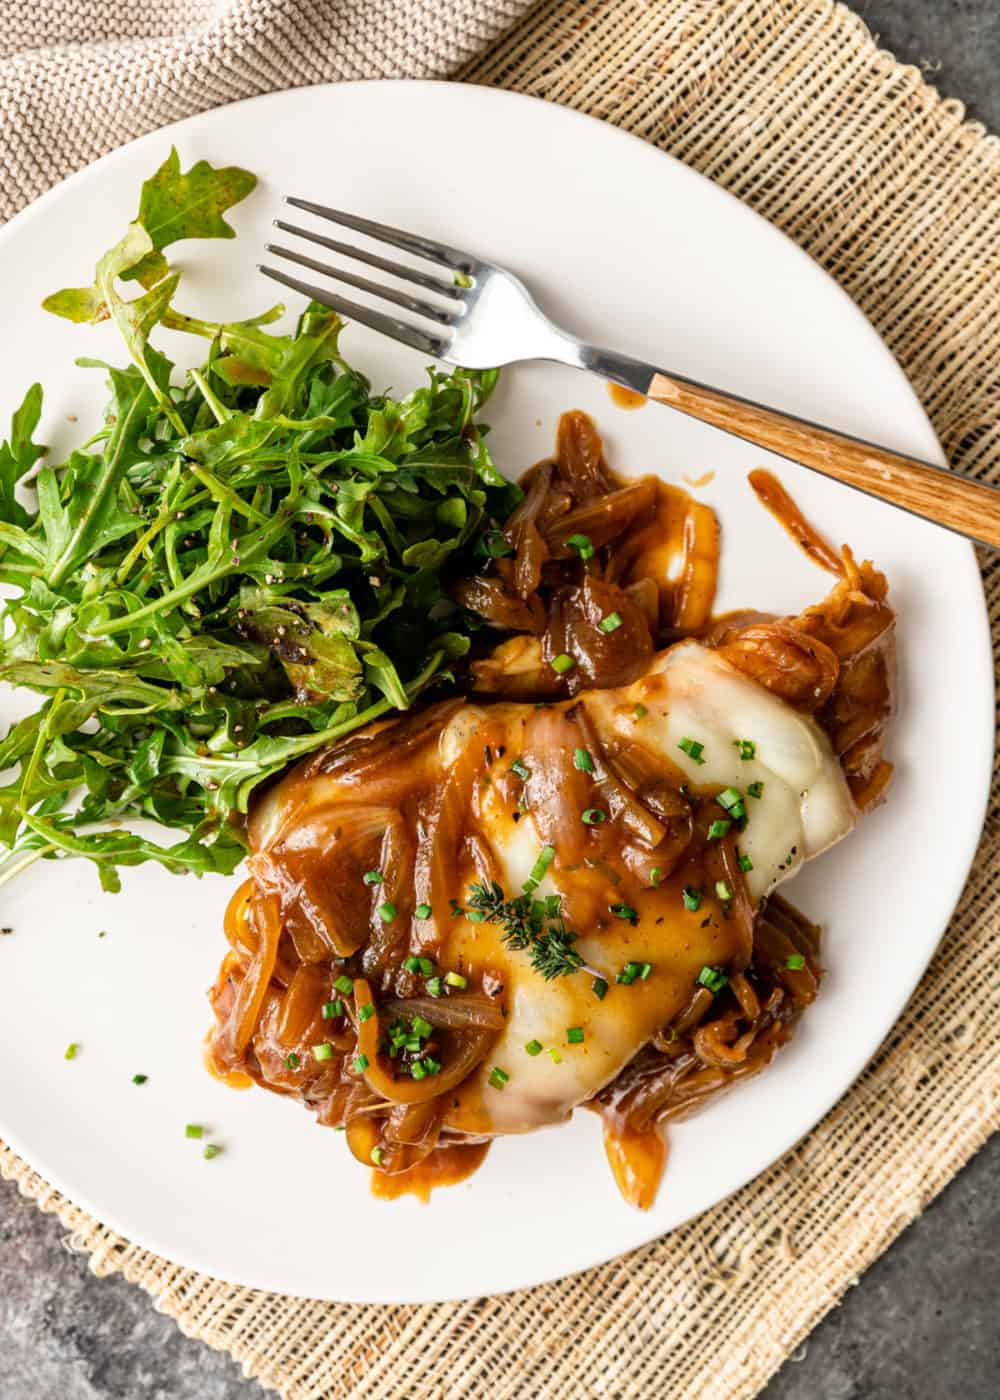 chicken with onions, sauce, and greens with a fork on a white plate